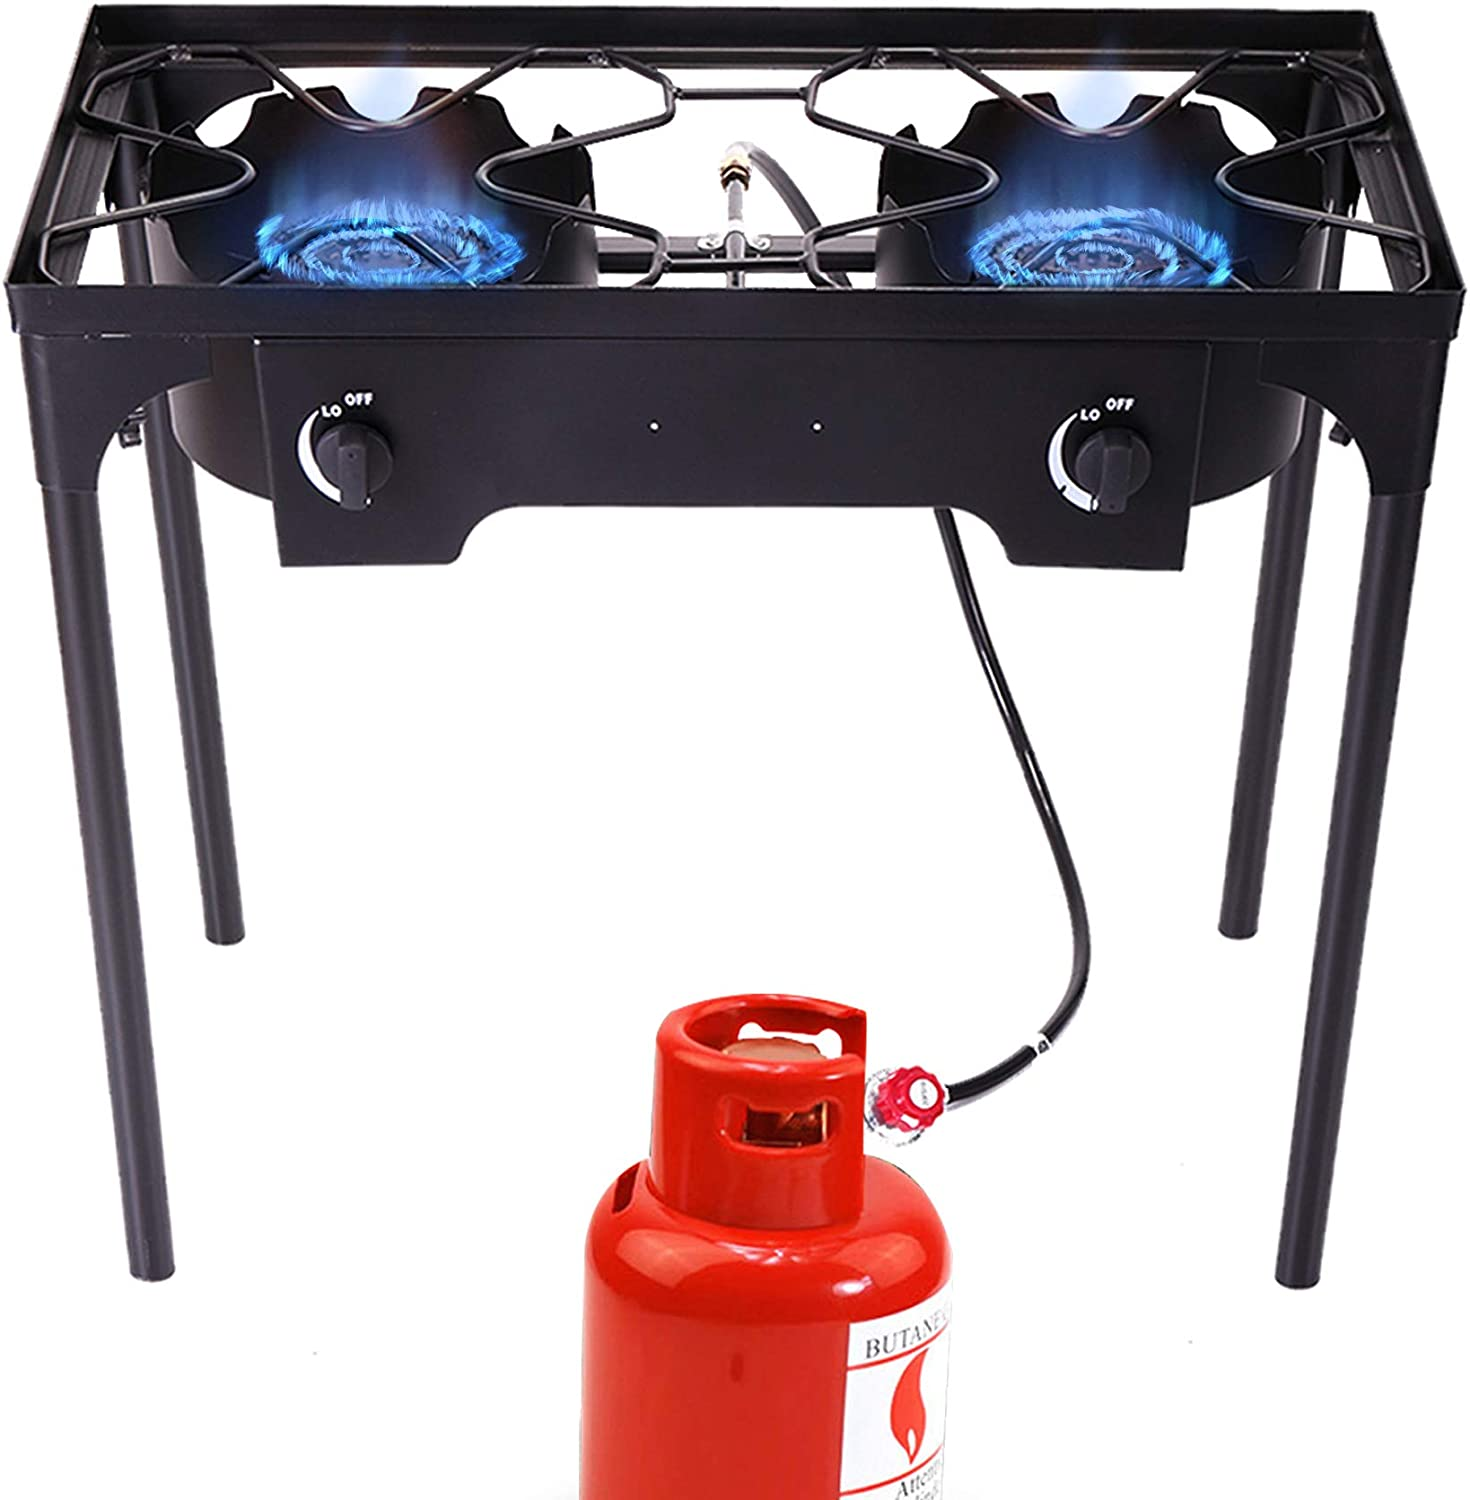 Sandinrayli Double Burner Outdoor Stand Stove Cooker Outdoor Camp Stove High Pressure Propane Gas w/Detachable Legs for Camp Cooking (Two Burner 180000 BTU)